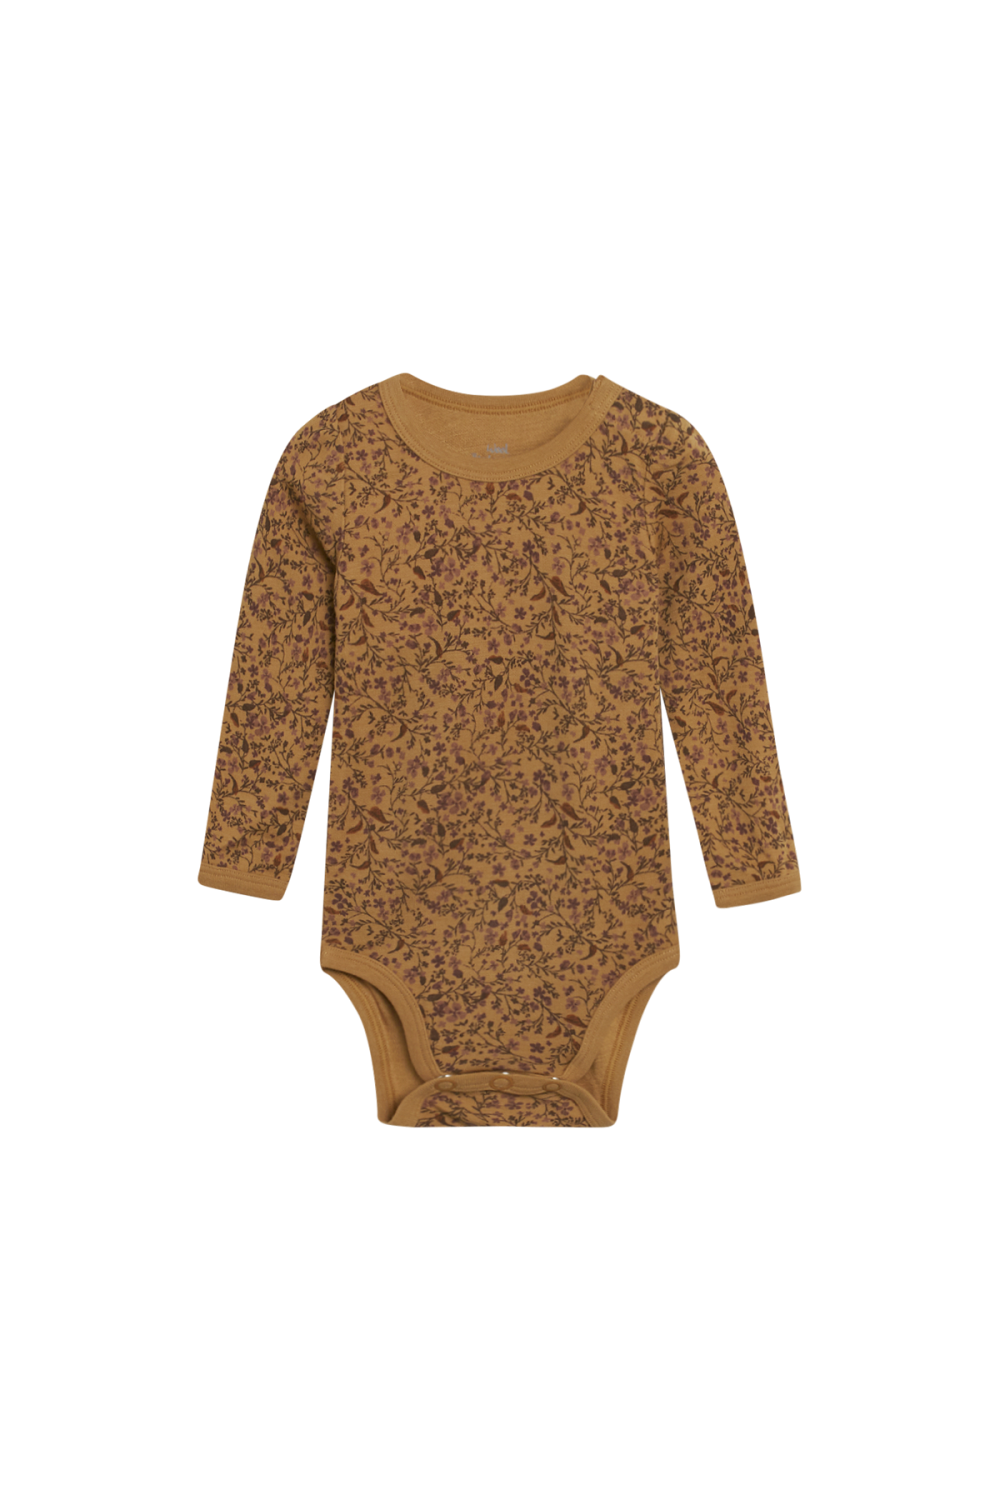 Hust and Claire - Levering august 21 Body Badia  i ull/bambus med blomster, cinnamon